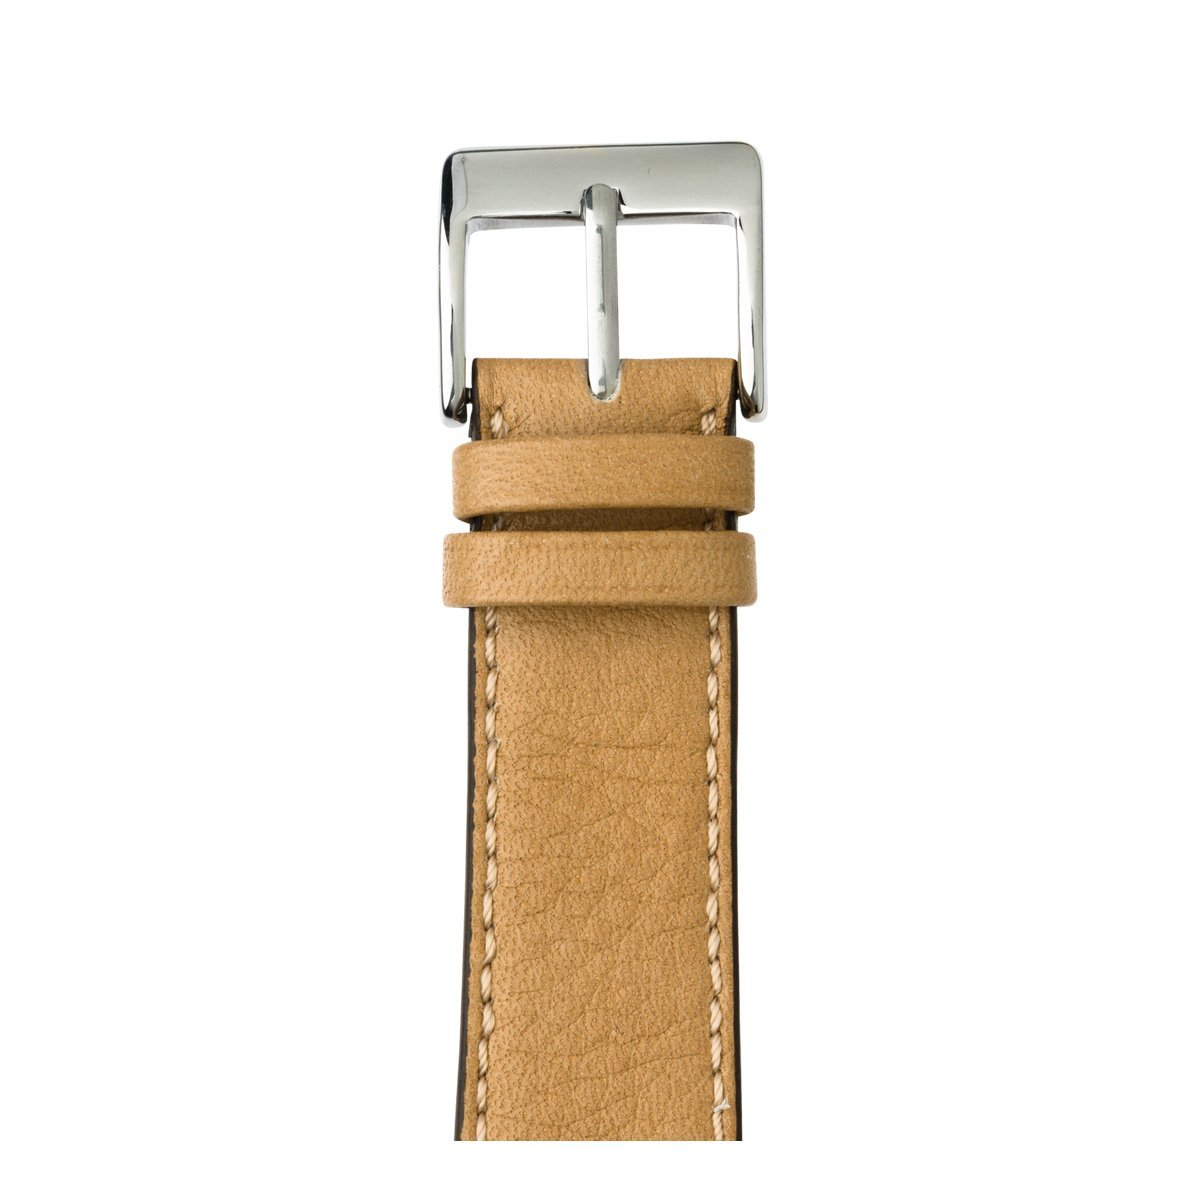 Roobaya | Premium Sauvage Leather Apple Watch Band in Sand | Includes Adapters matching the Color of the Apple Watch, Case Color:Stainless Steel, Size:42 mm